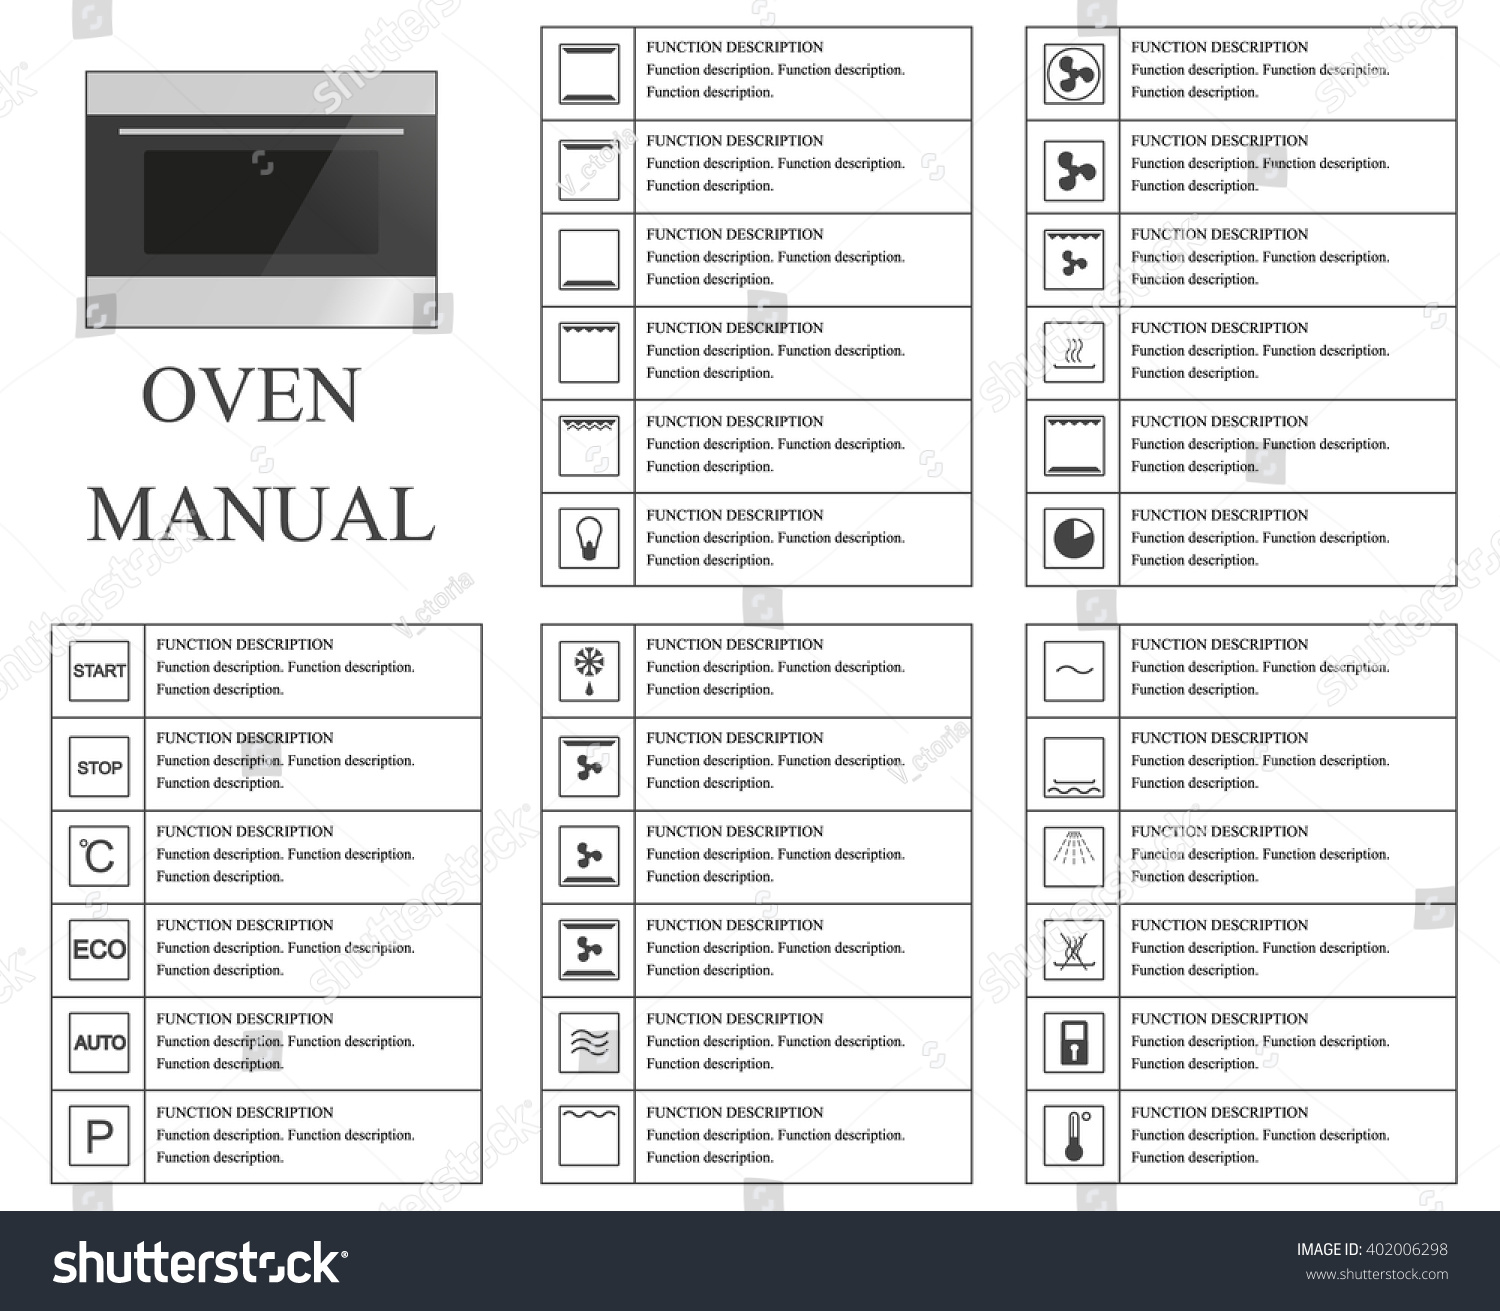 oven manual symbols instructions signs symbols stock. Black Bedroom Furniture Sets. Home Design Ideas